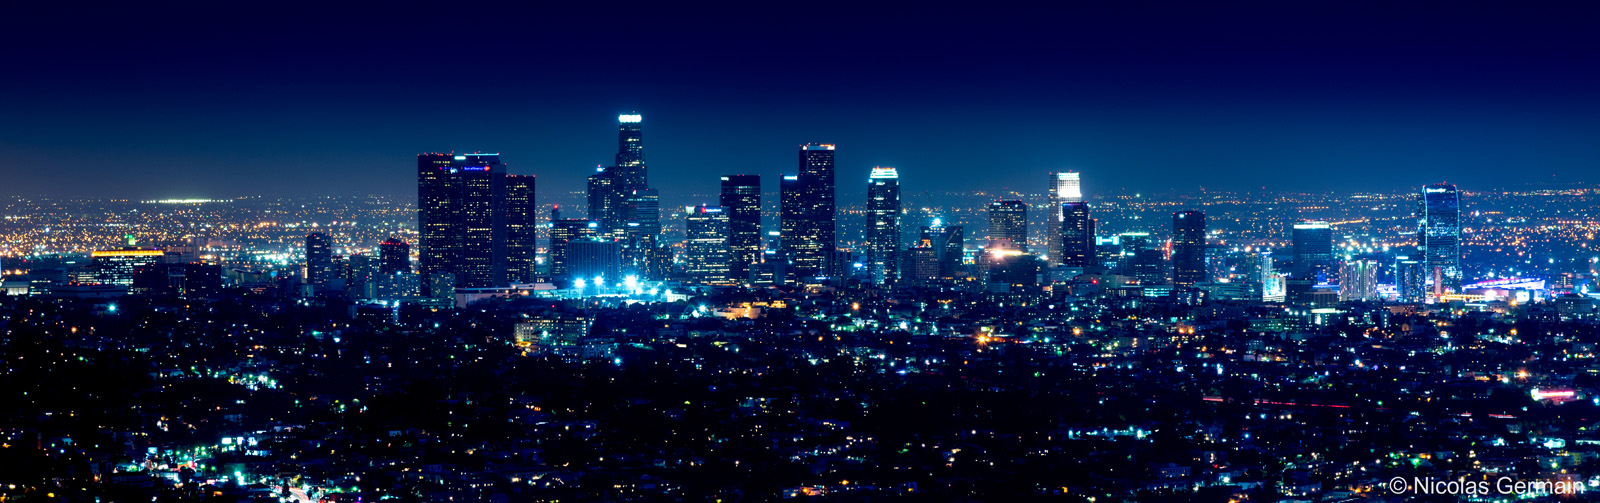 Vue sur les buildings du downtown de Los Angeles de nuit